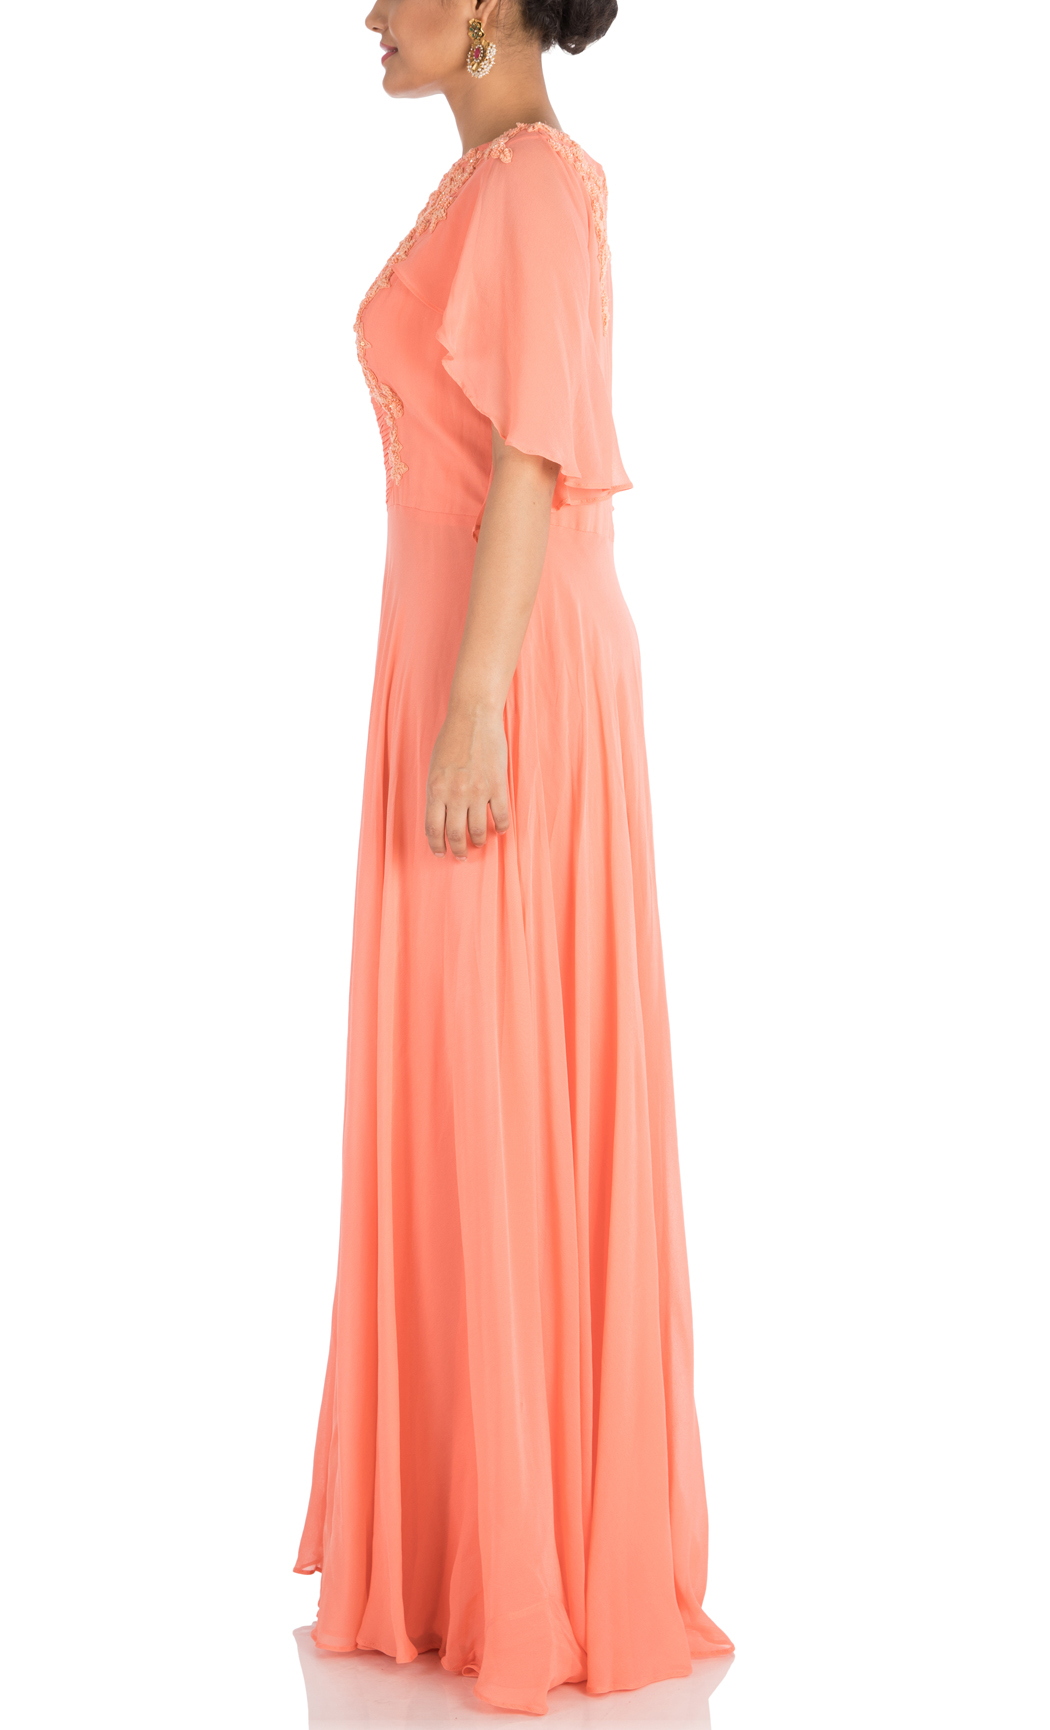 Apricot Hand Embroidered Cape Gown